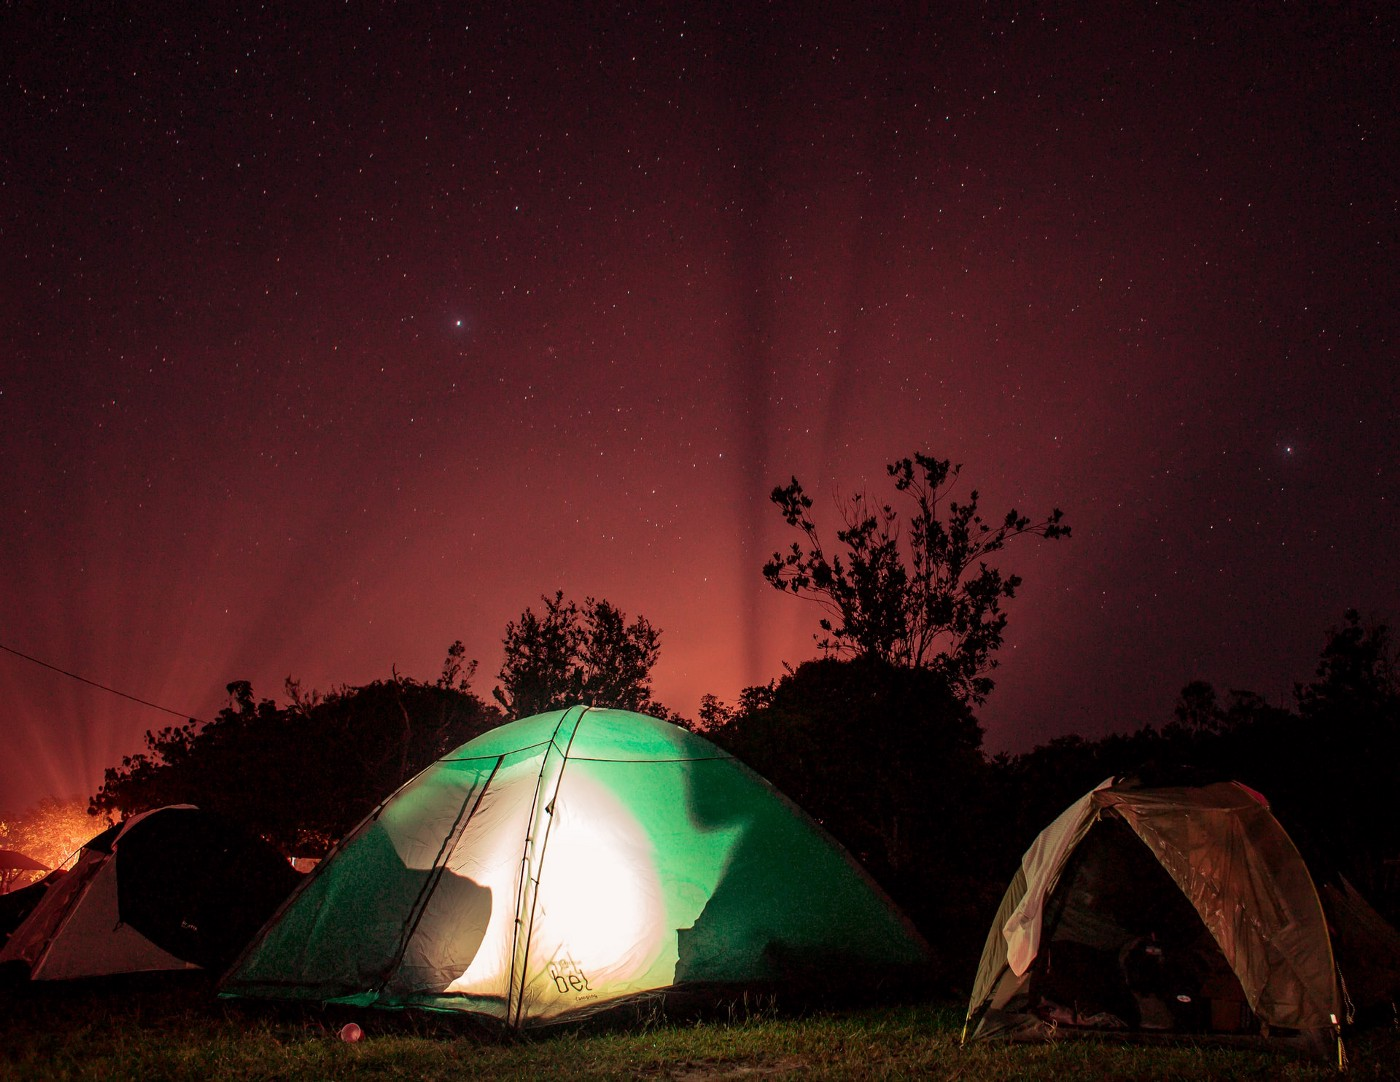 Basecamp (camp with tents and lighting)